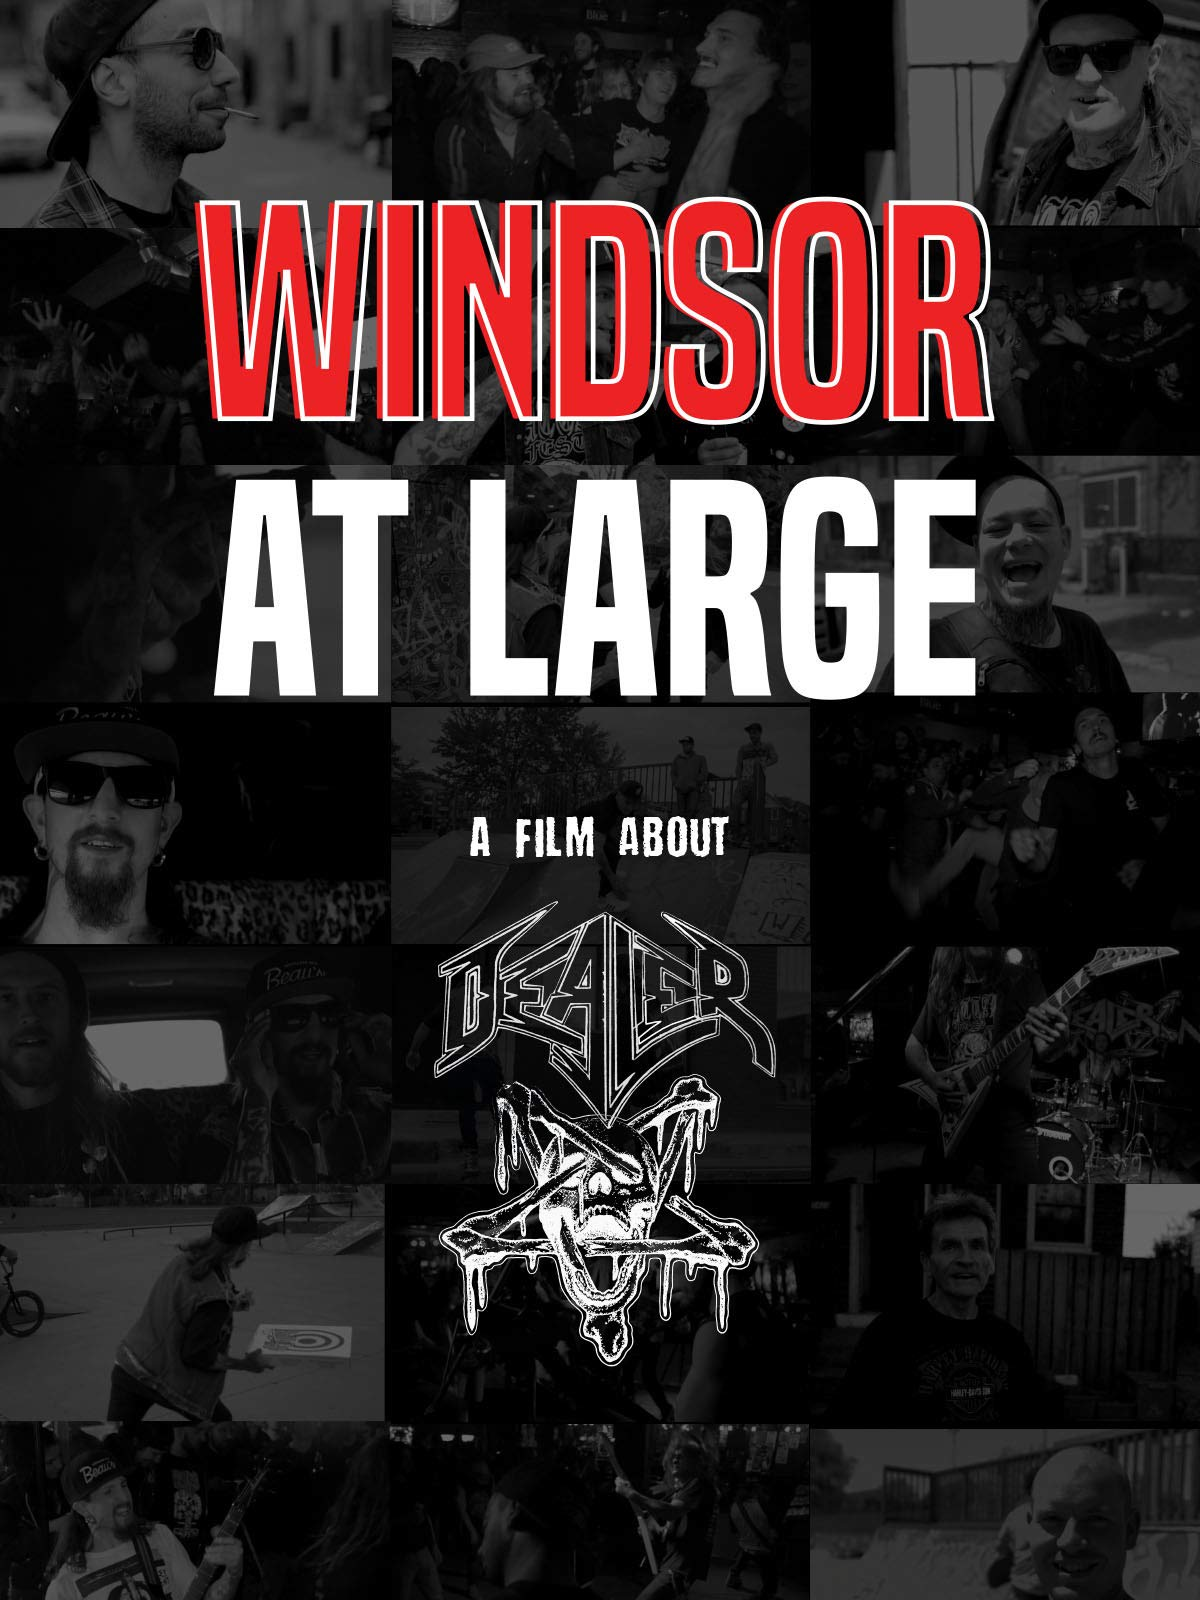 Windsor at Large